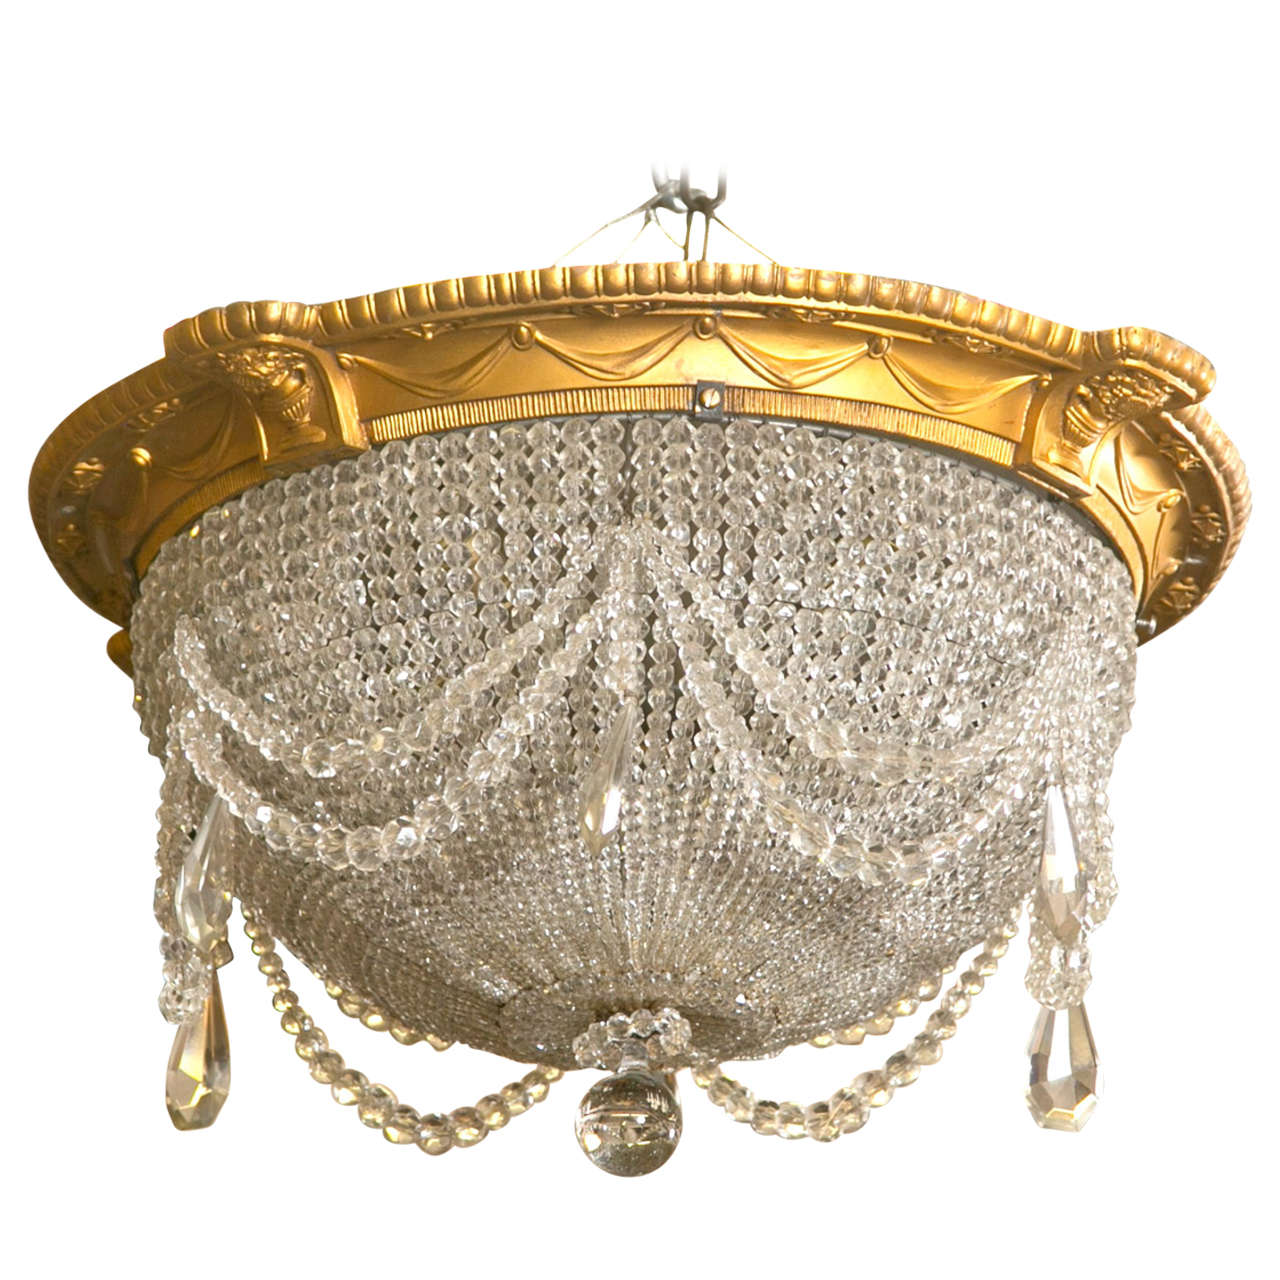 Antique Beaded Dome Crystal Chandelier from Strand Theatre, NYC 1 - Antique Beaded Dome Crystal Chandelier From Strand Theatre, NYC At